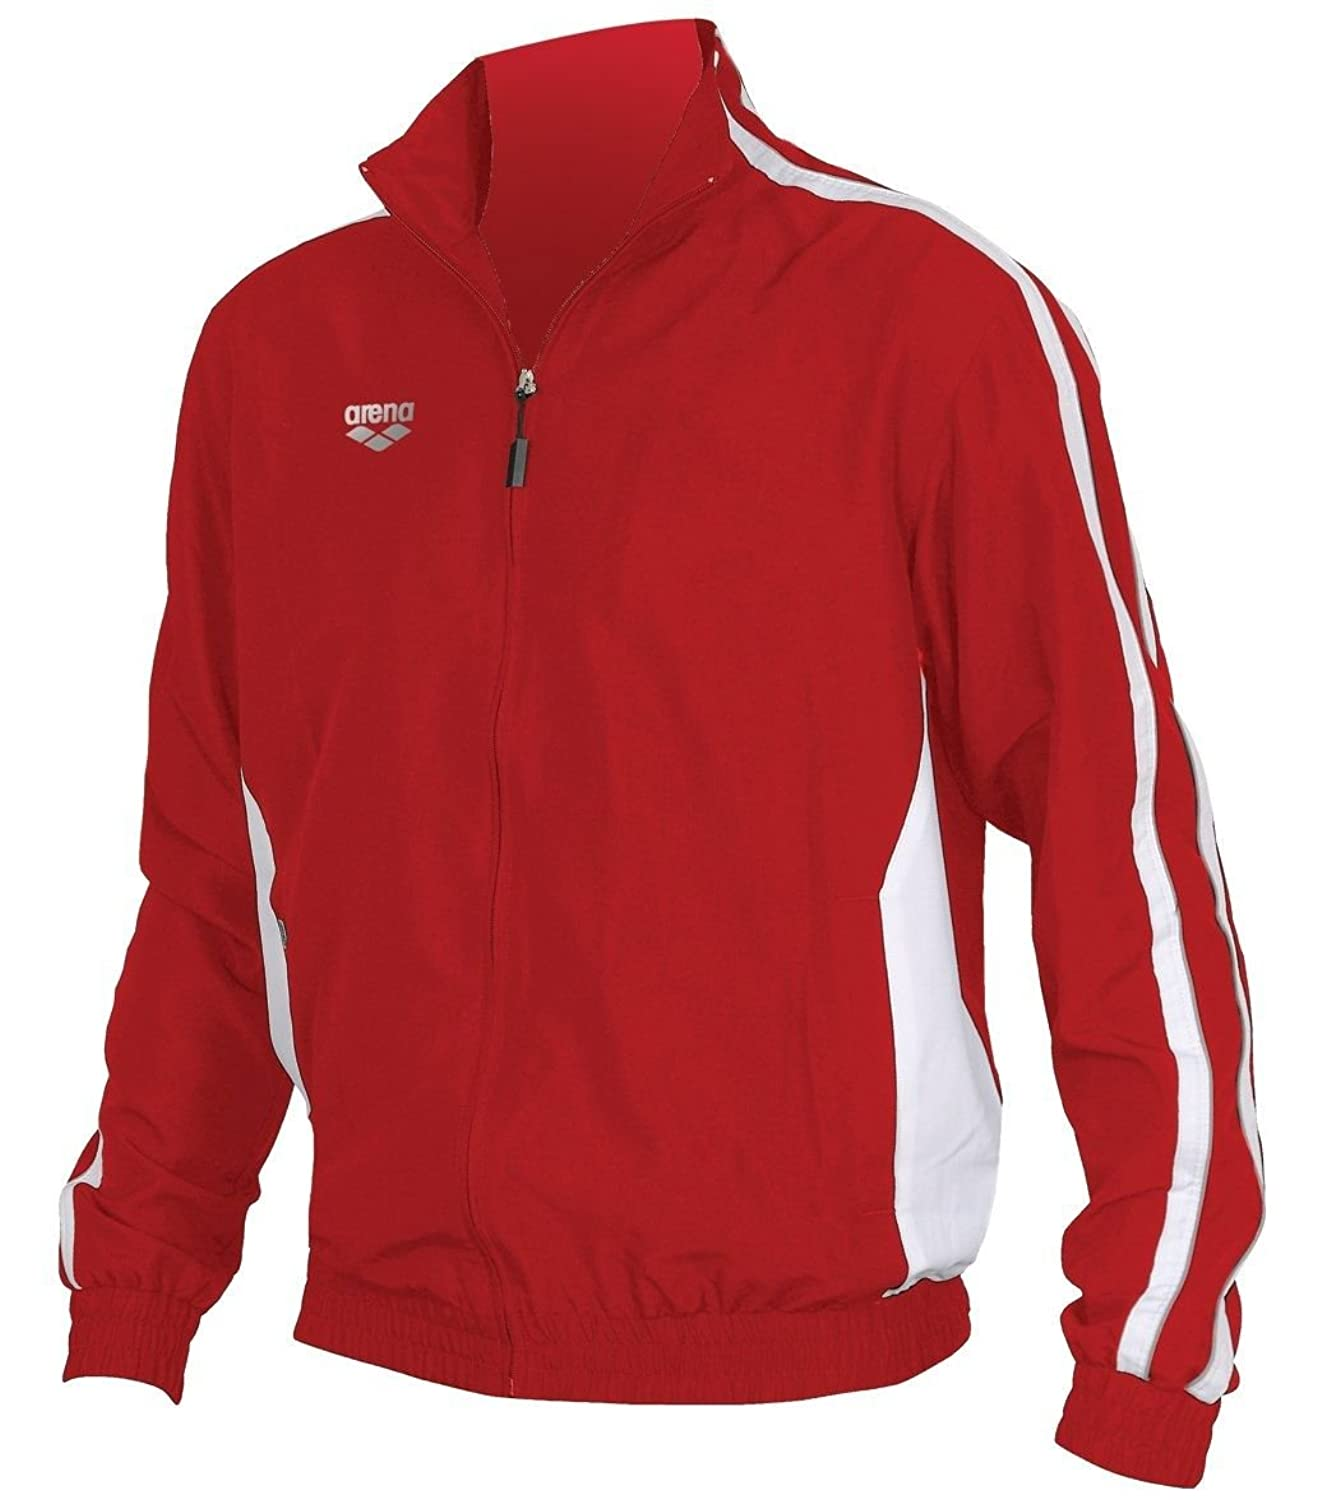 arena Tribal Youth Warm Up Jacket (Red/White, Small) for cheap 2yfl4OKm